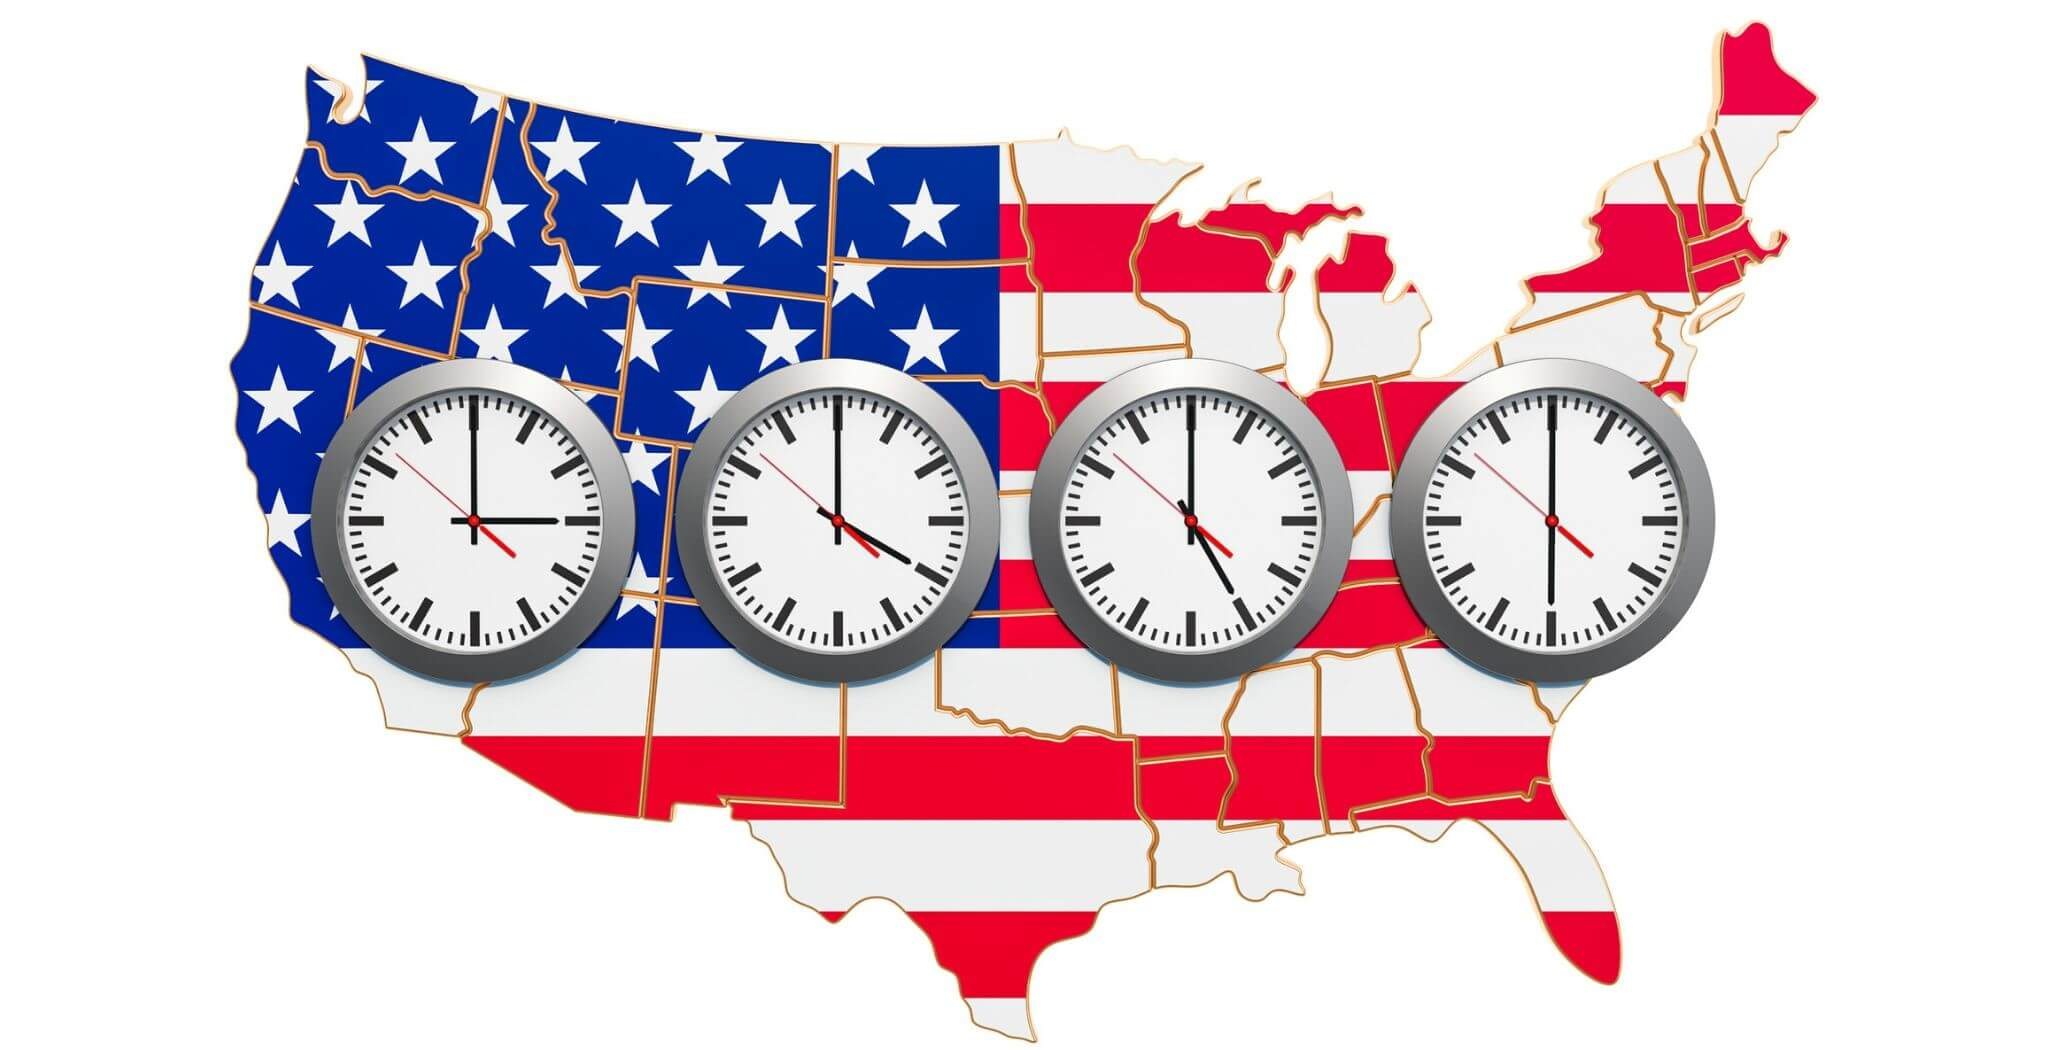 USA time zones for signups